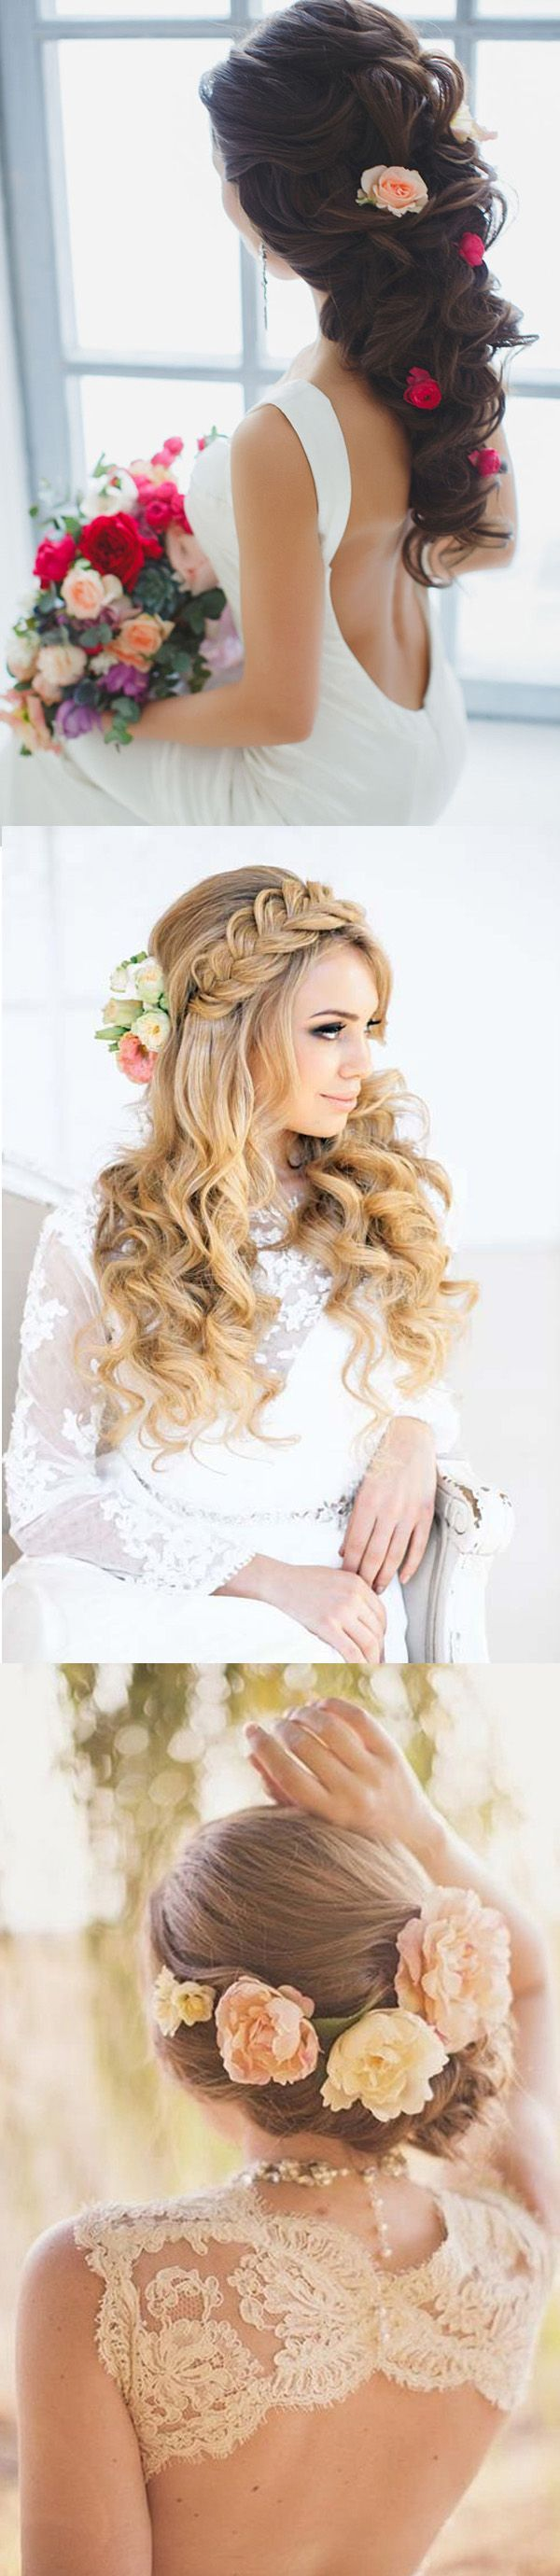 beautiful wedding hairstyles with flowers for brides